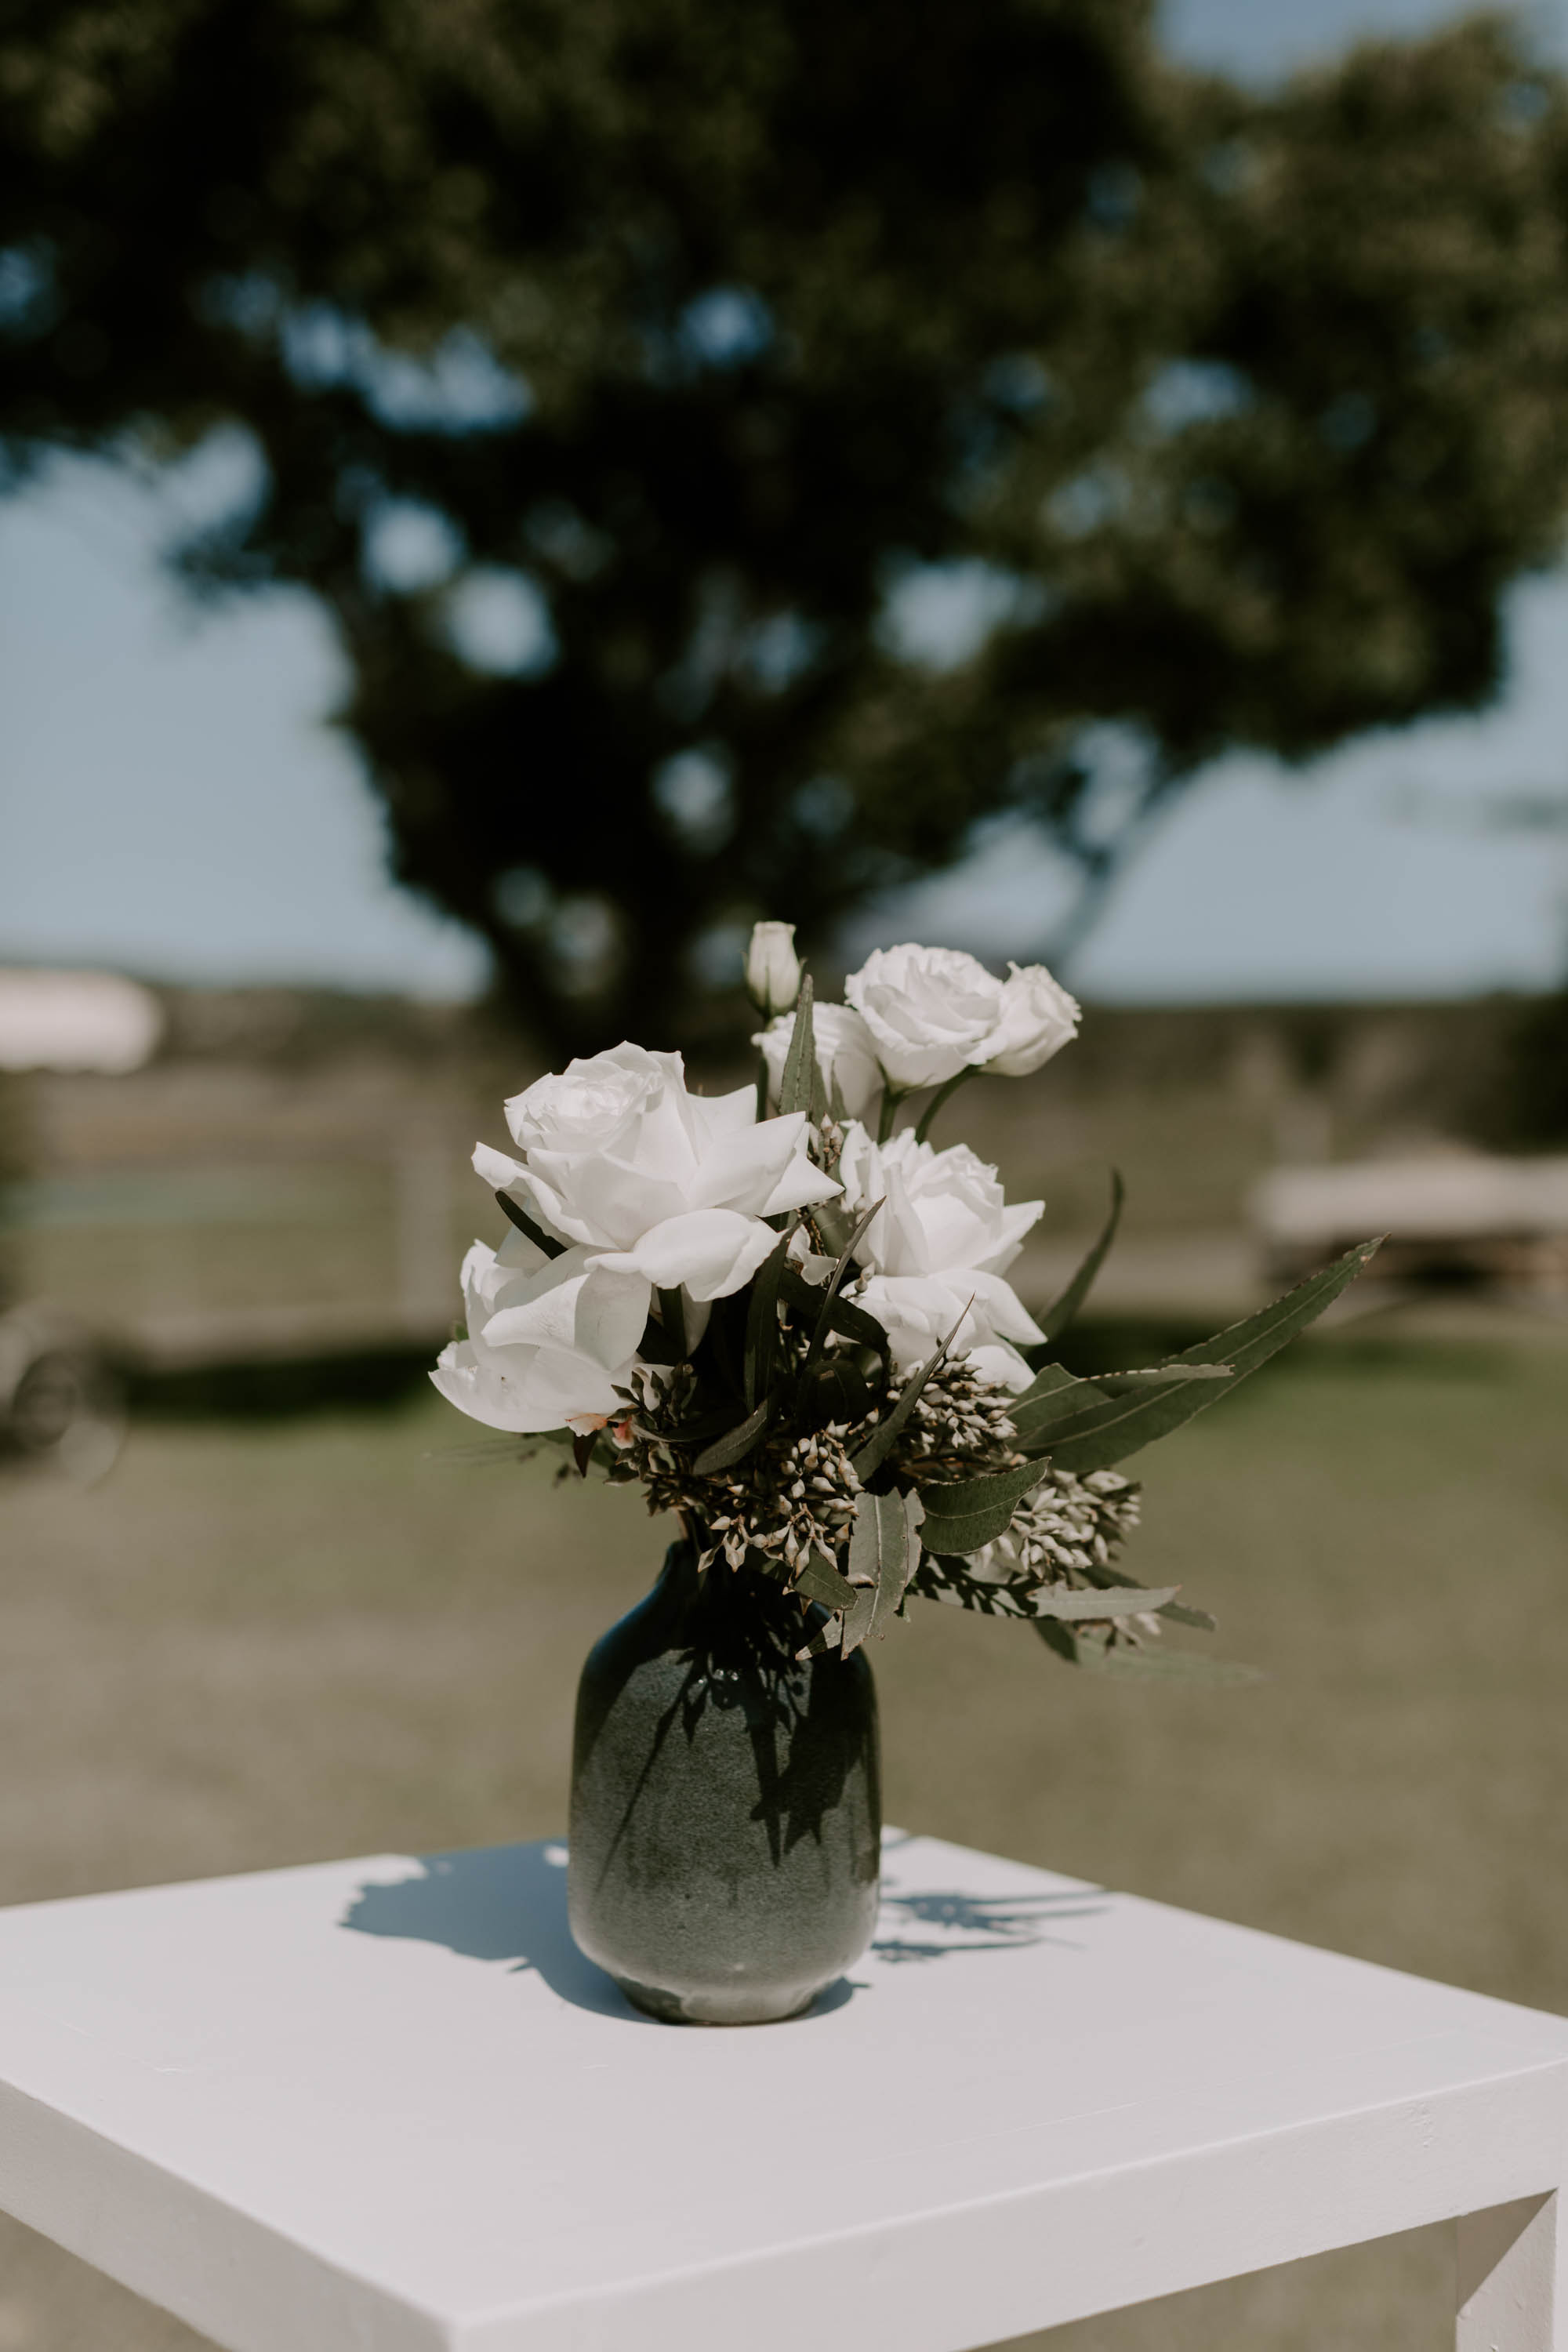 Garden party flowers featuring white roses and lush greenery